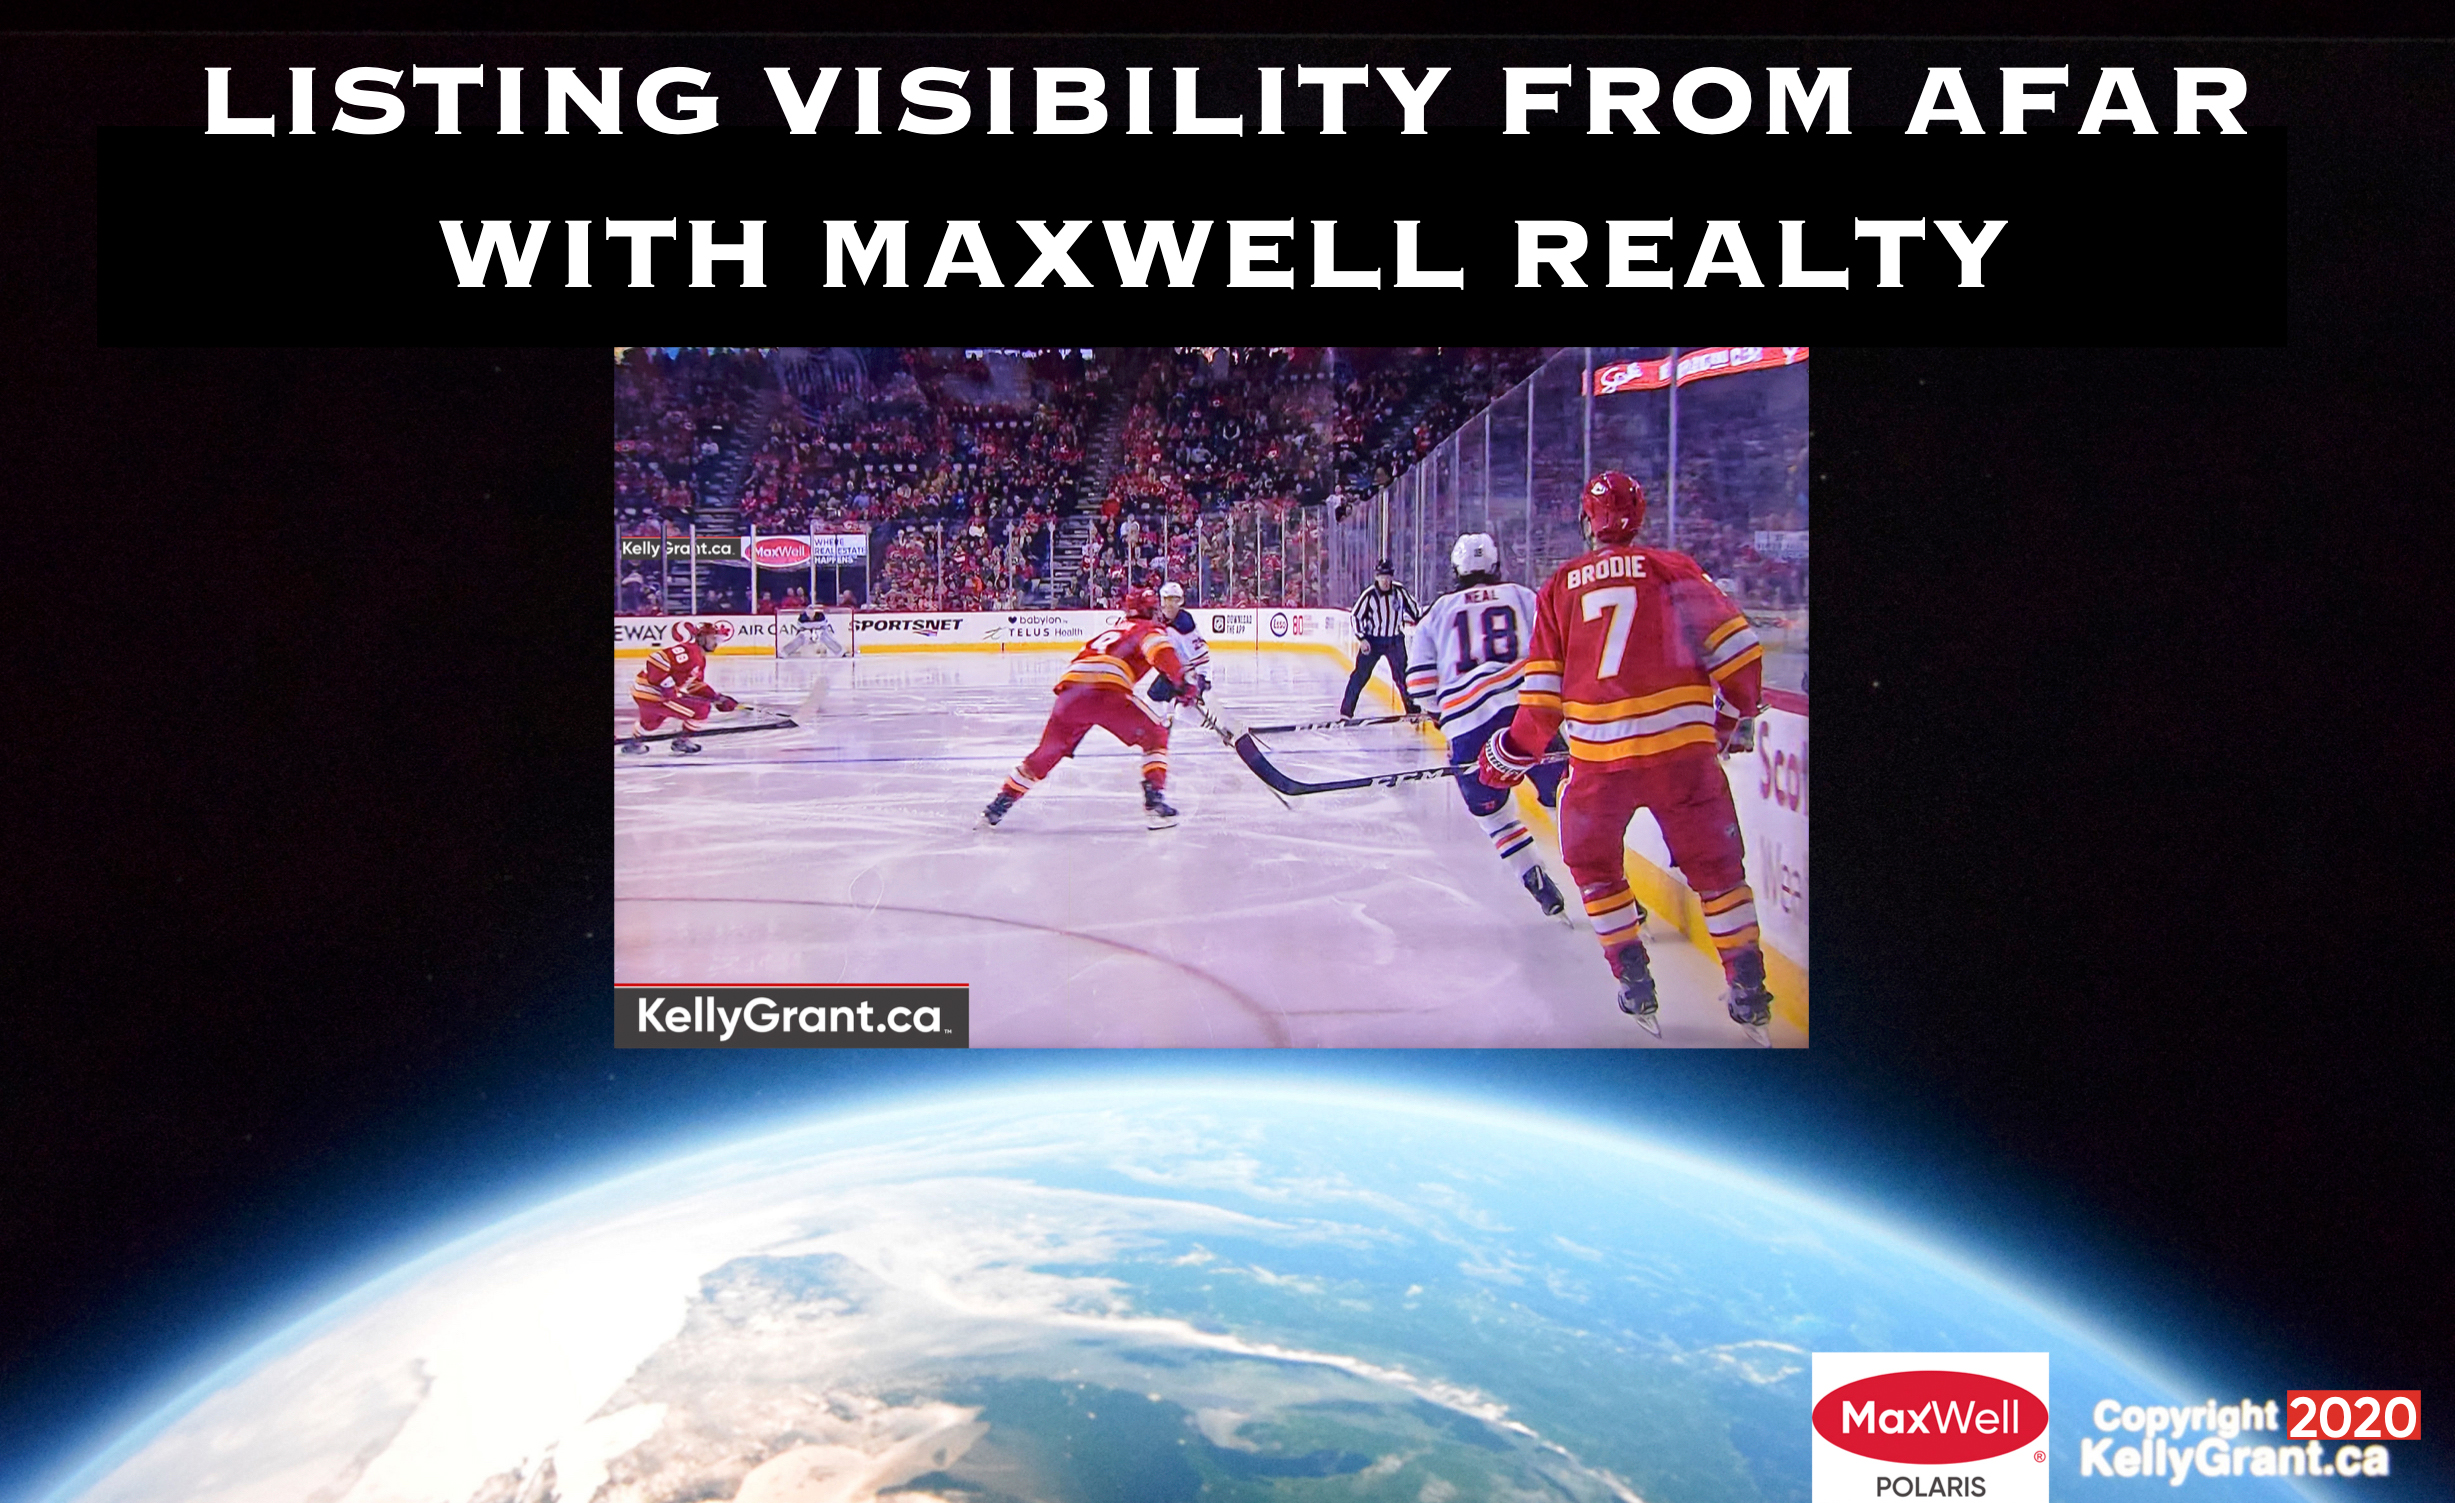 Listing Visibility from Afar with MaxWell Realty